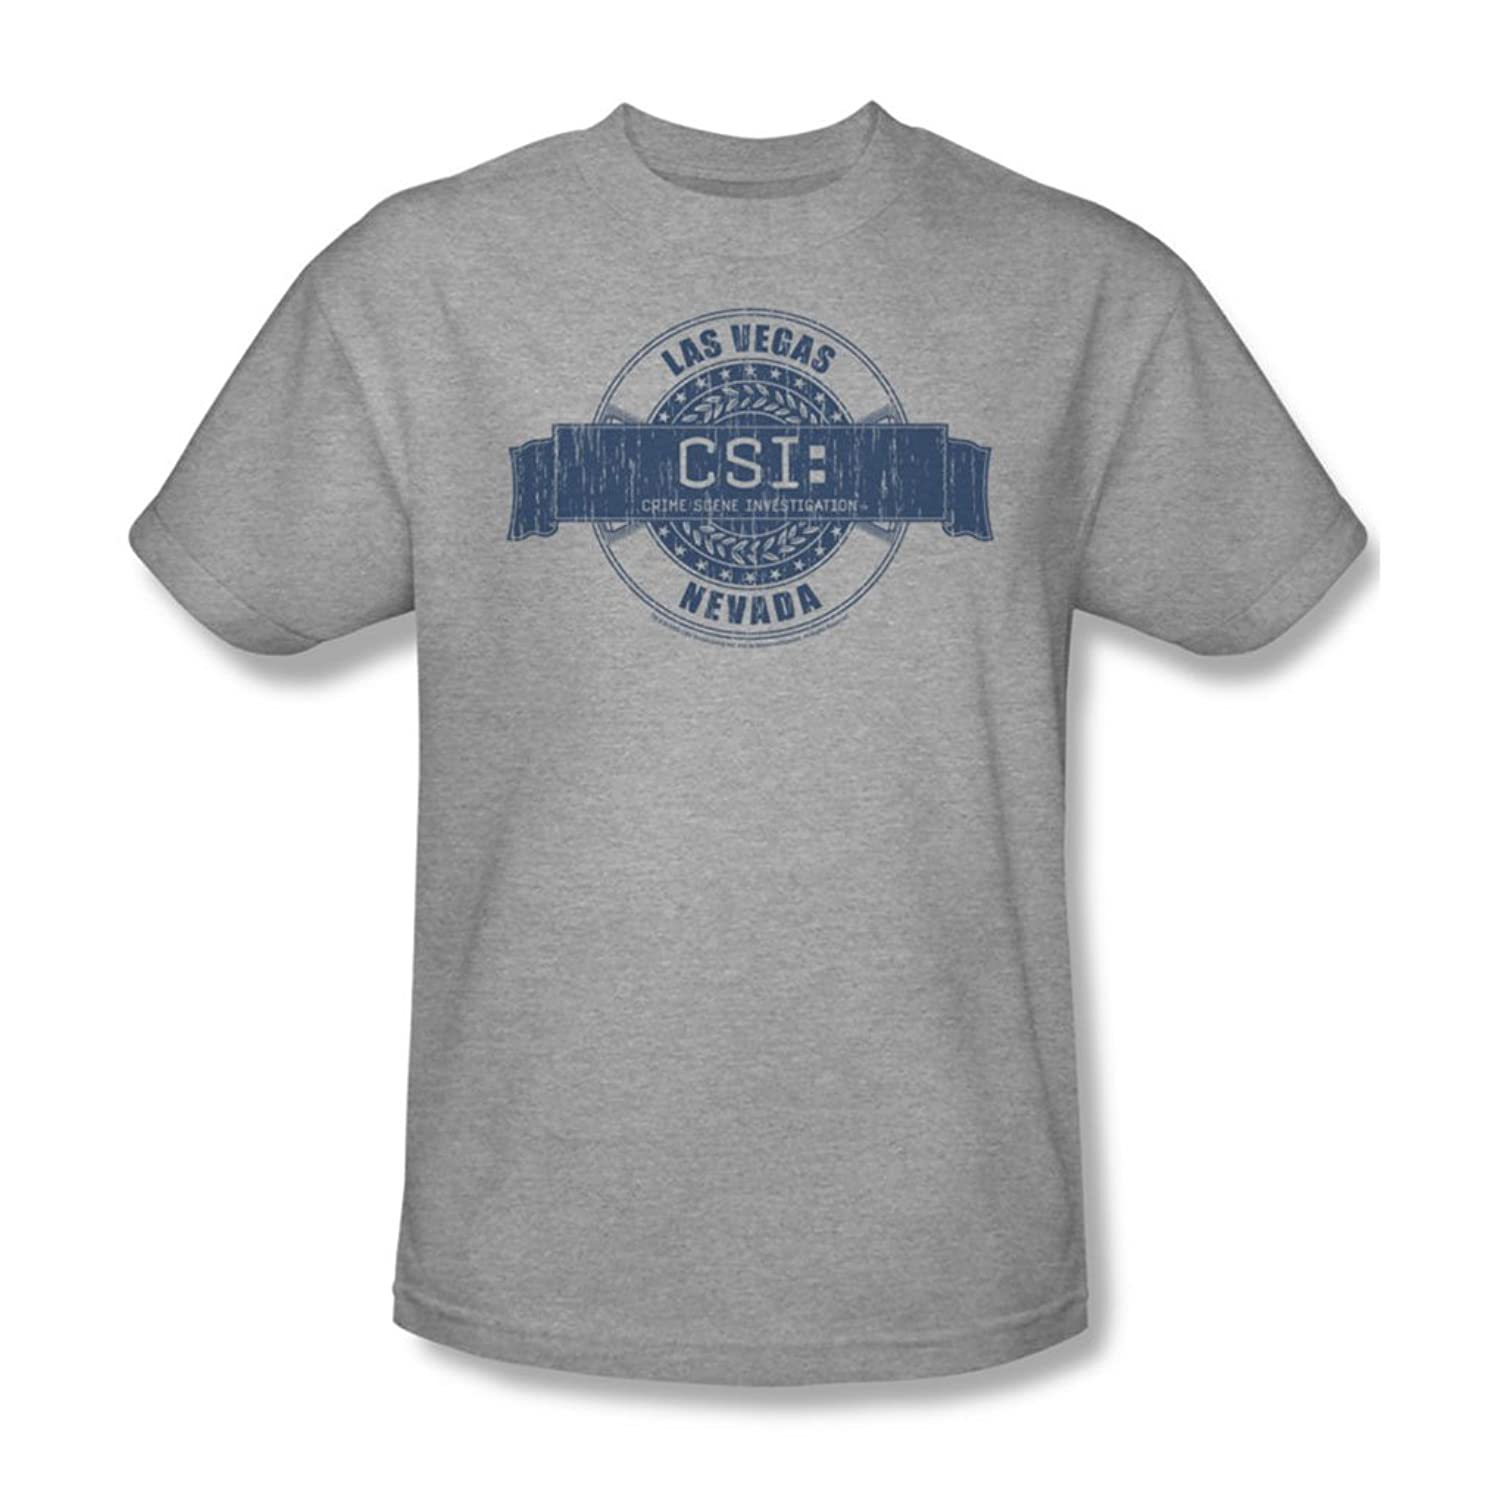 Cbs - Csi / Csi Vegas Badge Adult T-Shirt In Heather